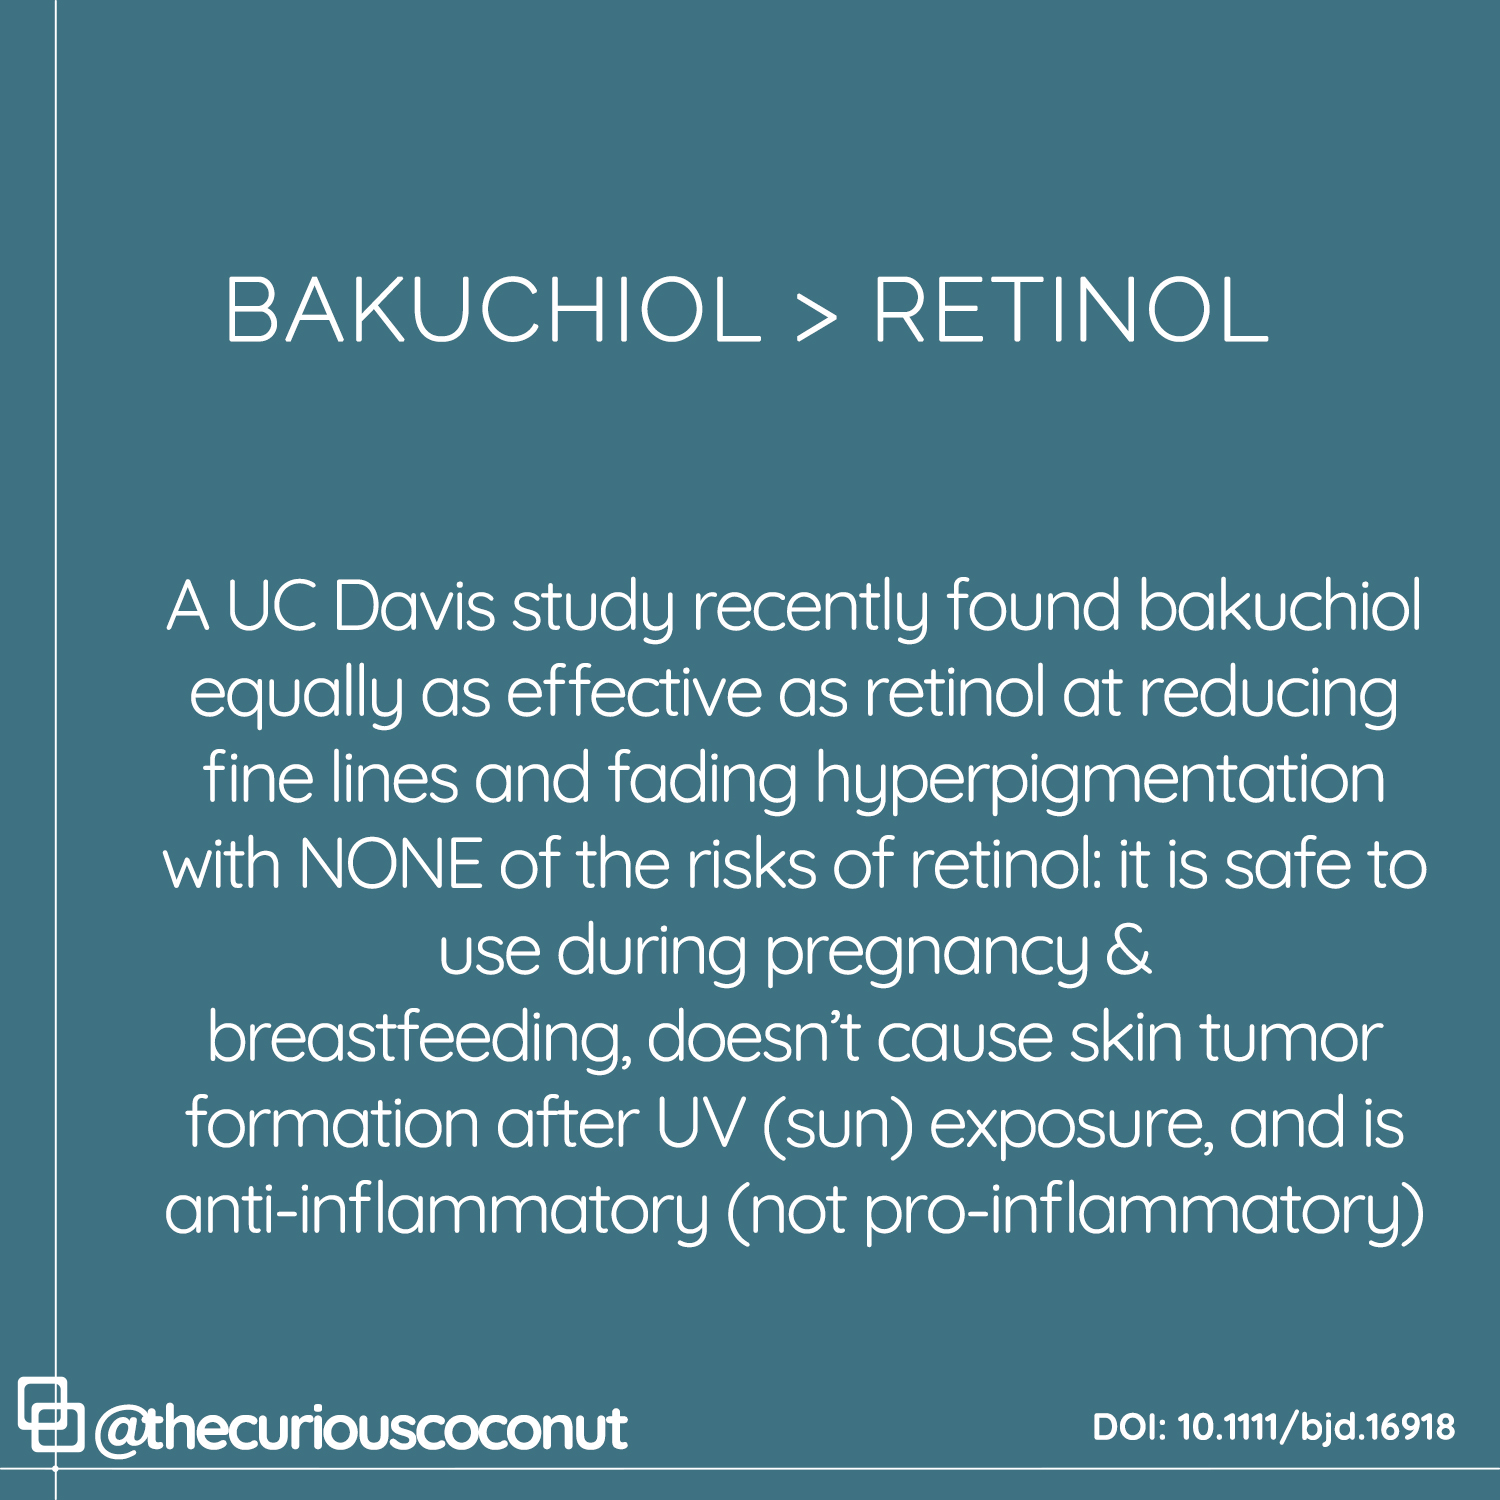 bakuchiol is better than retinol